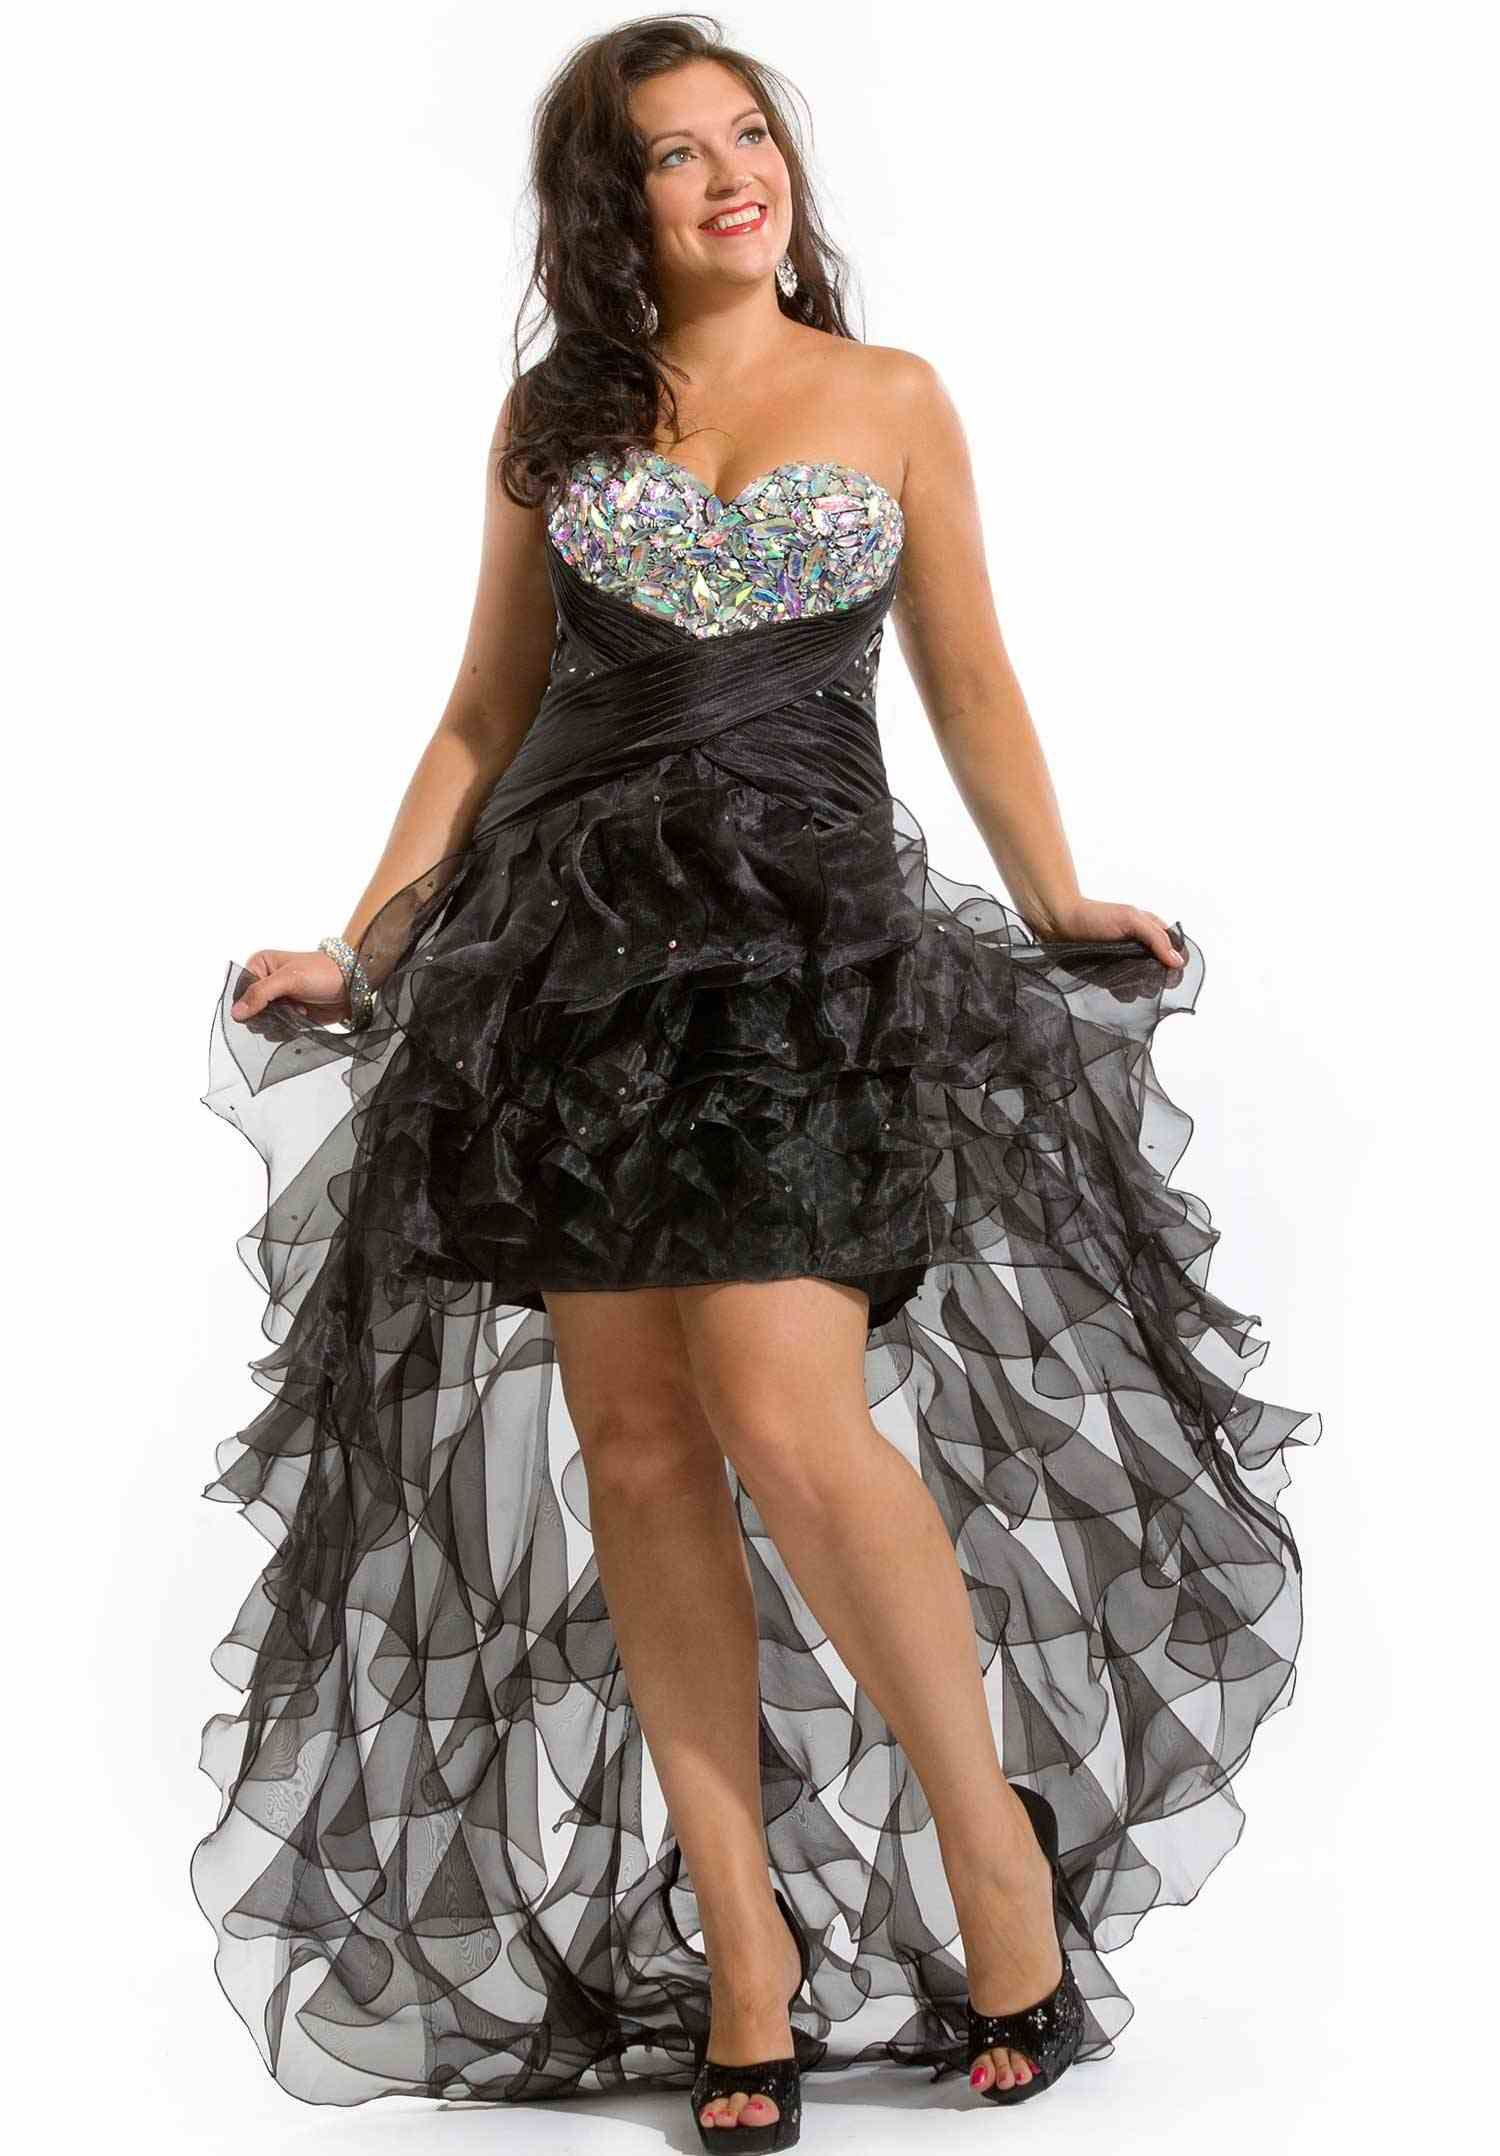 20 Perfect Plus Size Homecoming Dresses for Girls | Prom dresses ...